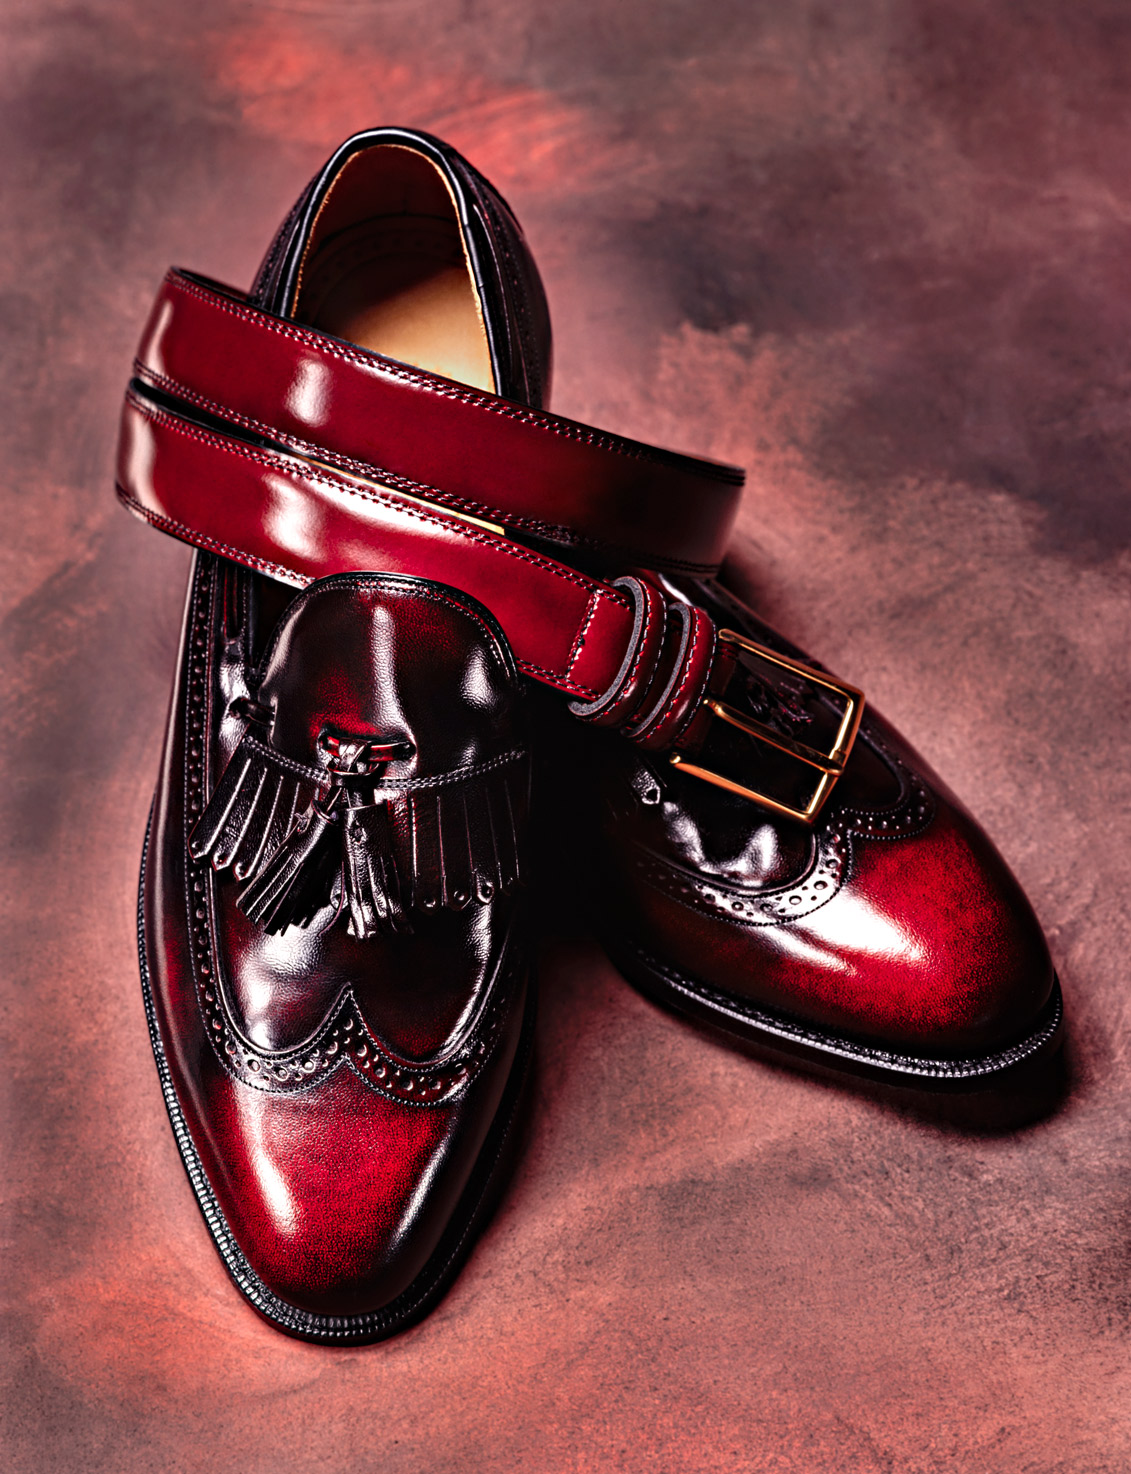 advertising photography of dress shoes